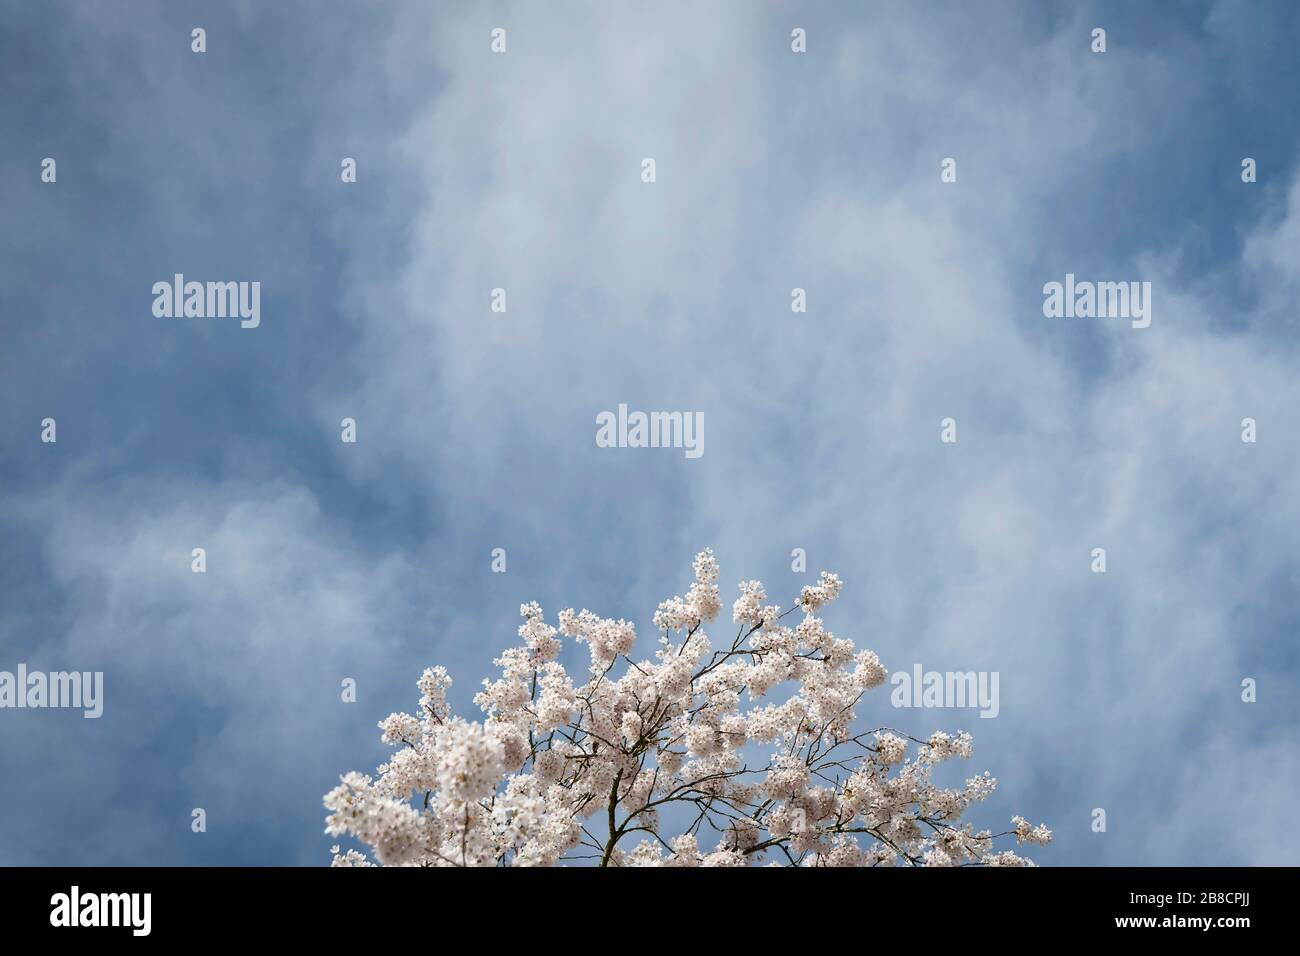 Streatham, London, UK. 21st March, 2020. UK Weather: Early spring conditions in Streatham Common in South London, England. Credit: Sam Mellish / Alamy Live News Stock Photo